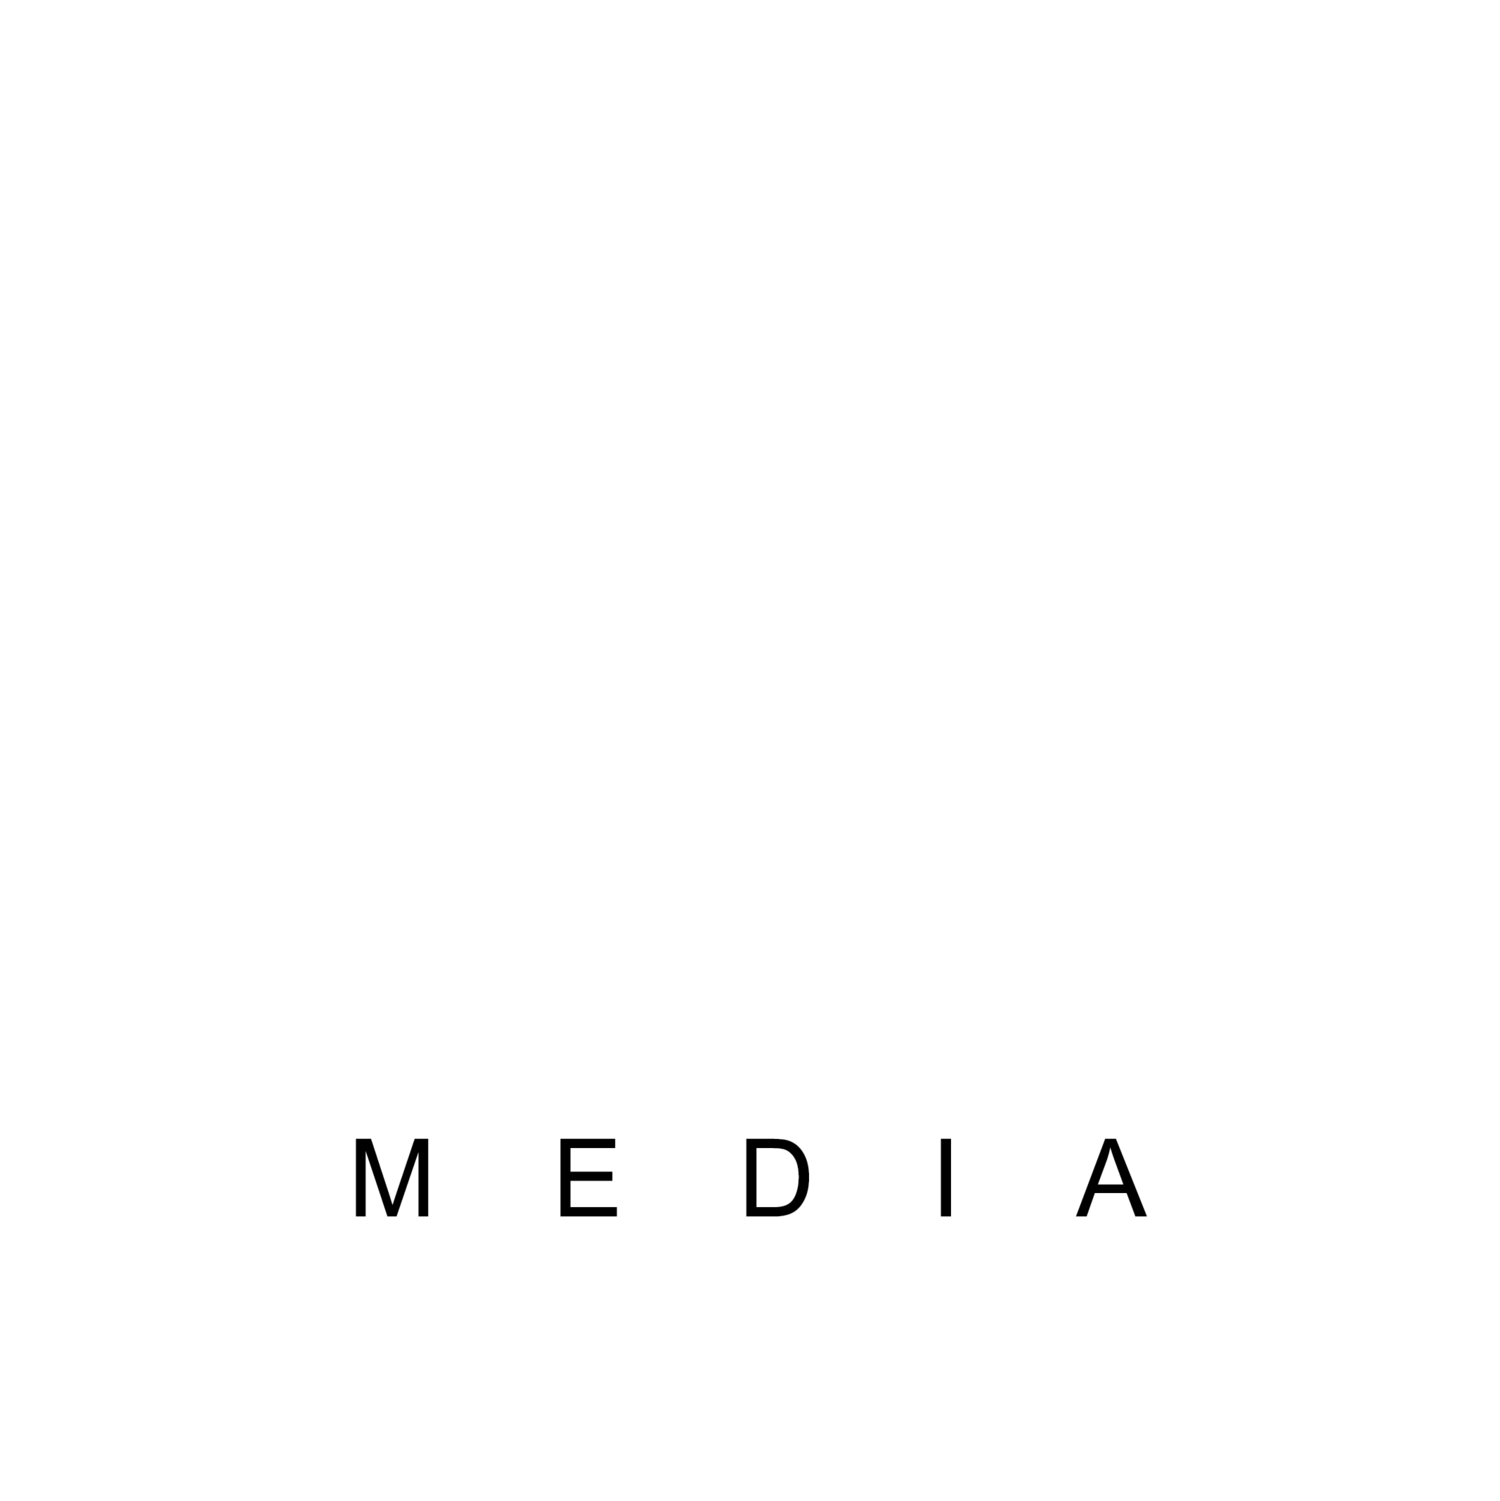 North Volume Media